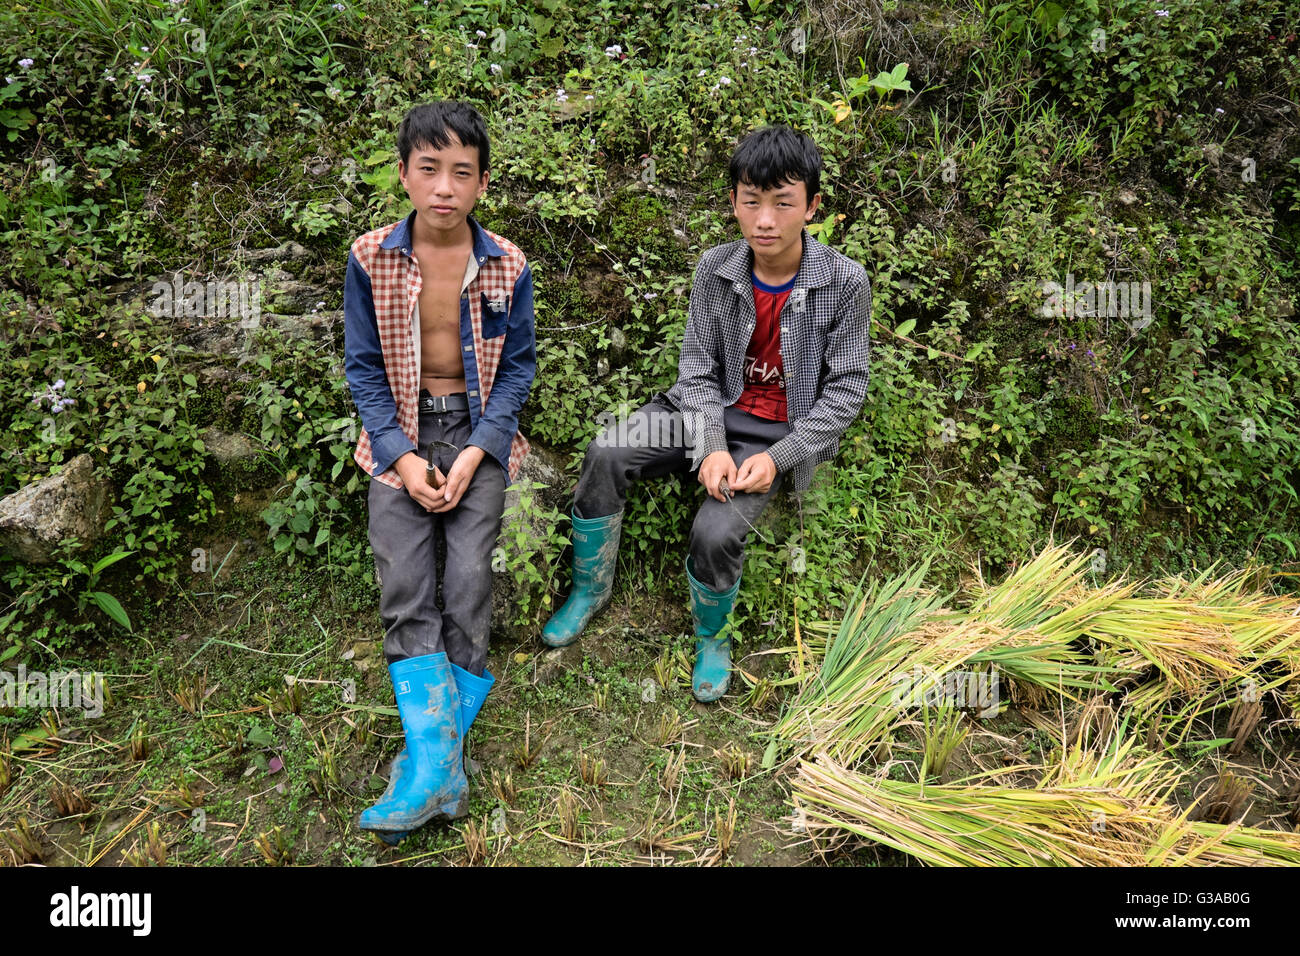 Young Hmong boys at the harvesting of rice in the village of Ta Phin, Sapa, Lao Cai  Province, Vietnam - Stock Image